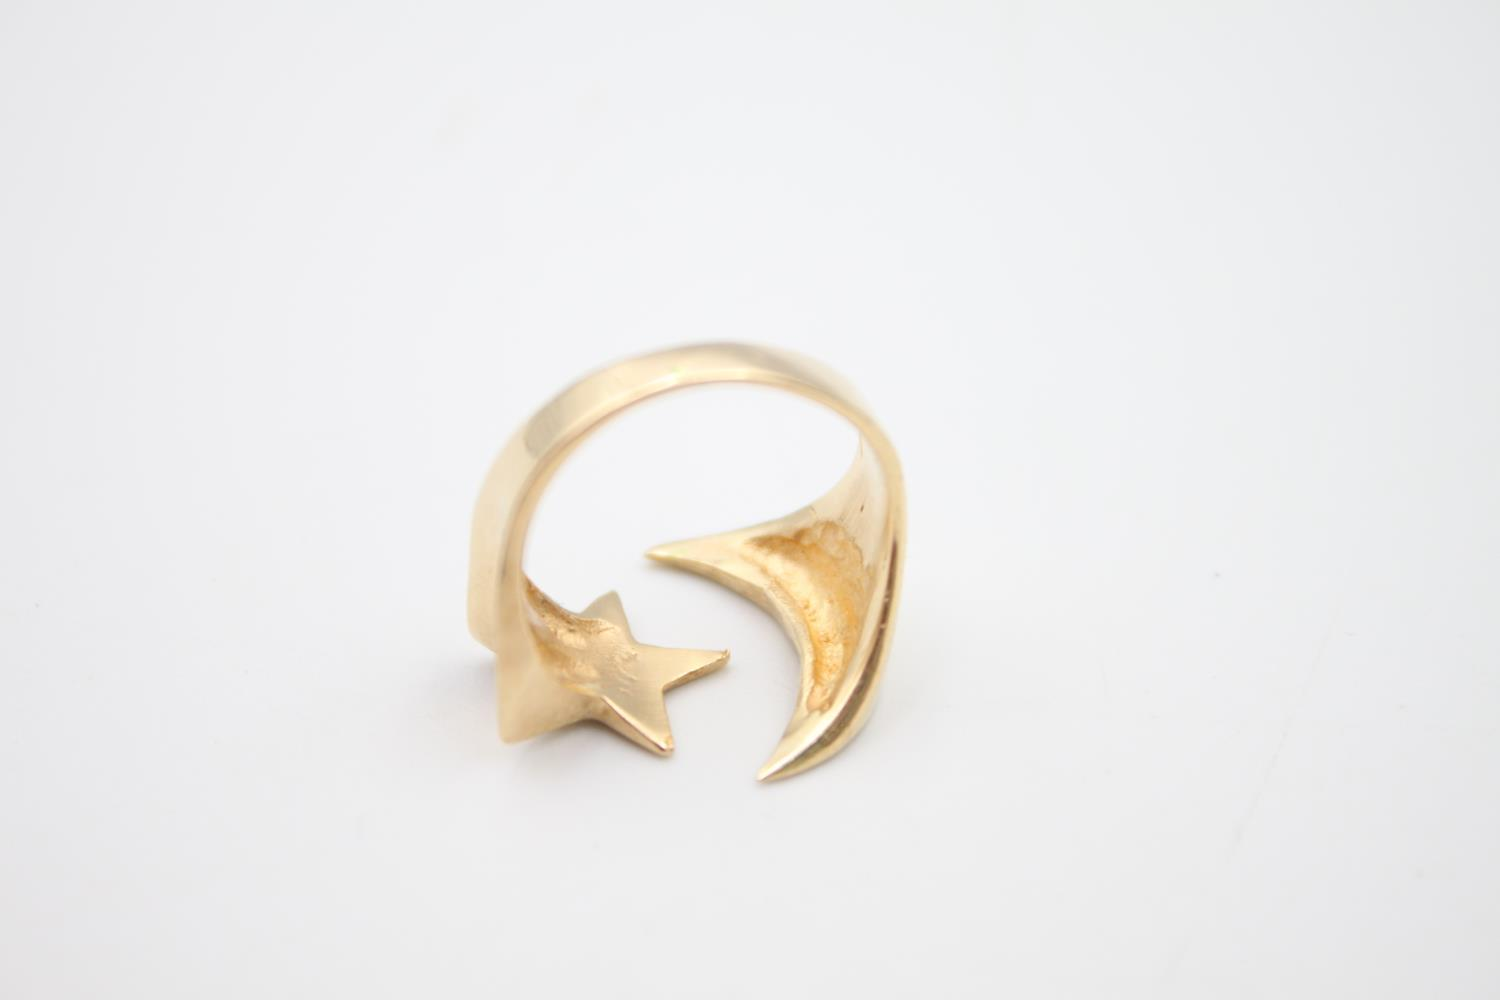 14ct gold moon and star signet style ring 4.8g Size K - Image 5 of 5